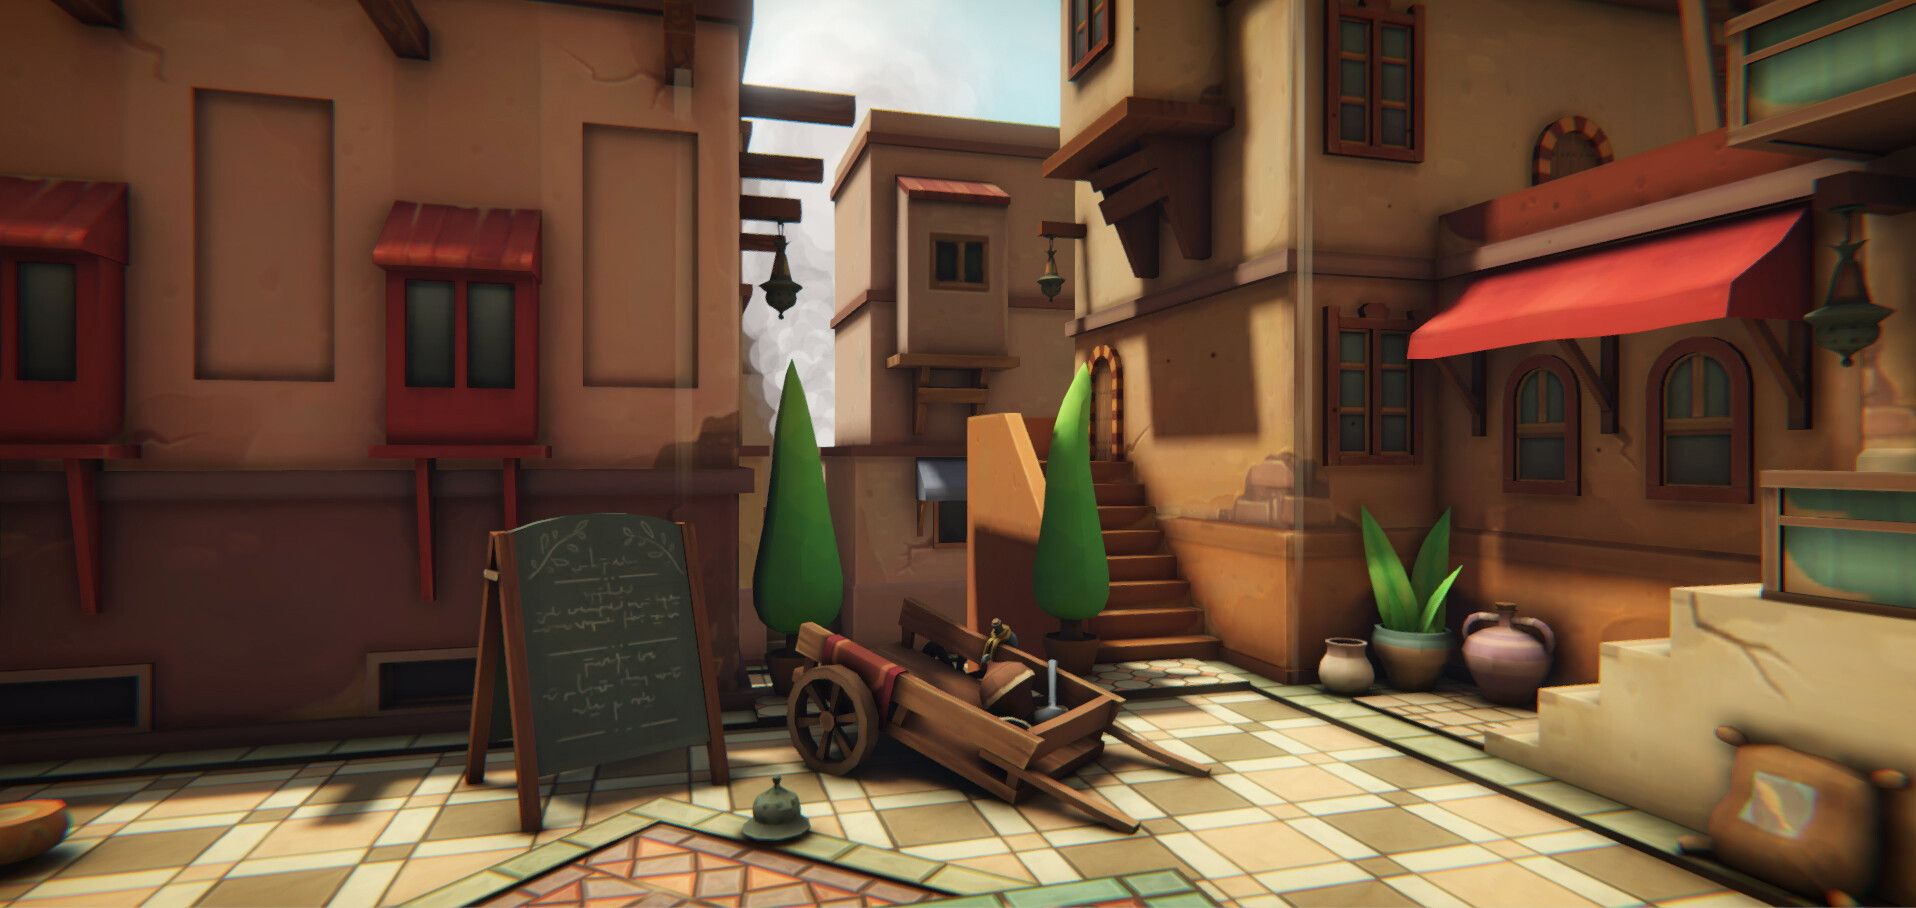 Morocco by Laura MartinotLevel prototype in Unity for a